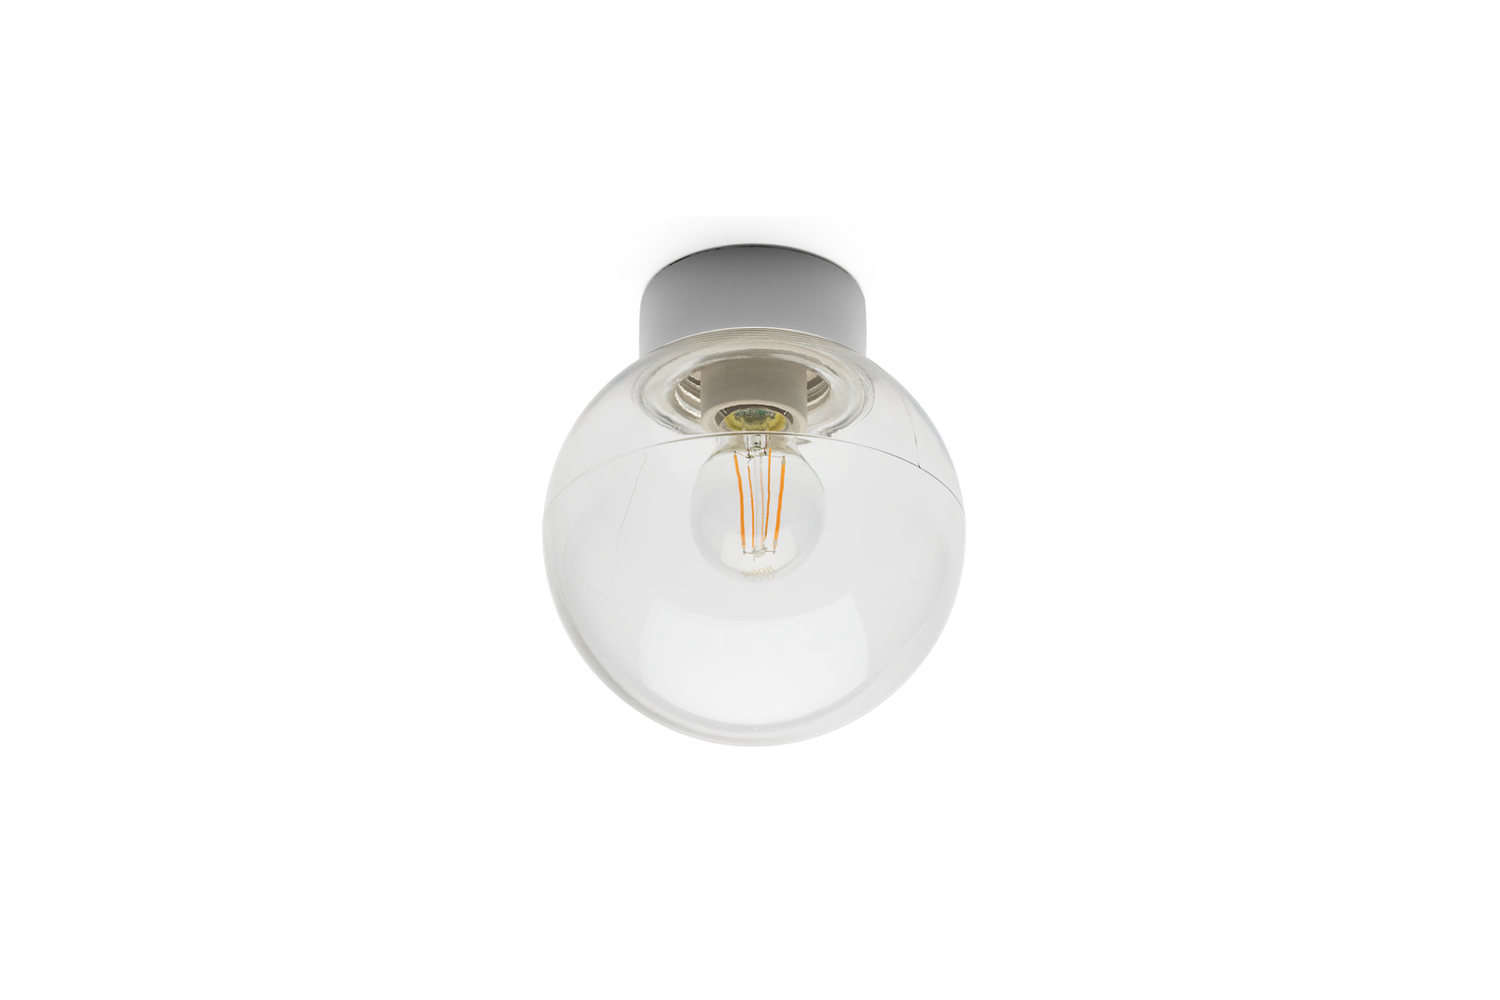 The porcelainCeiling Lamp with clear glass globe is €3loading=